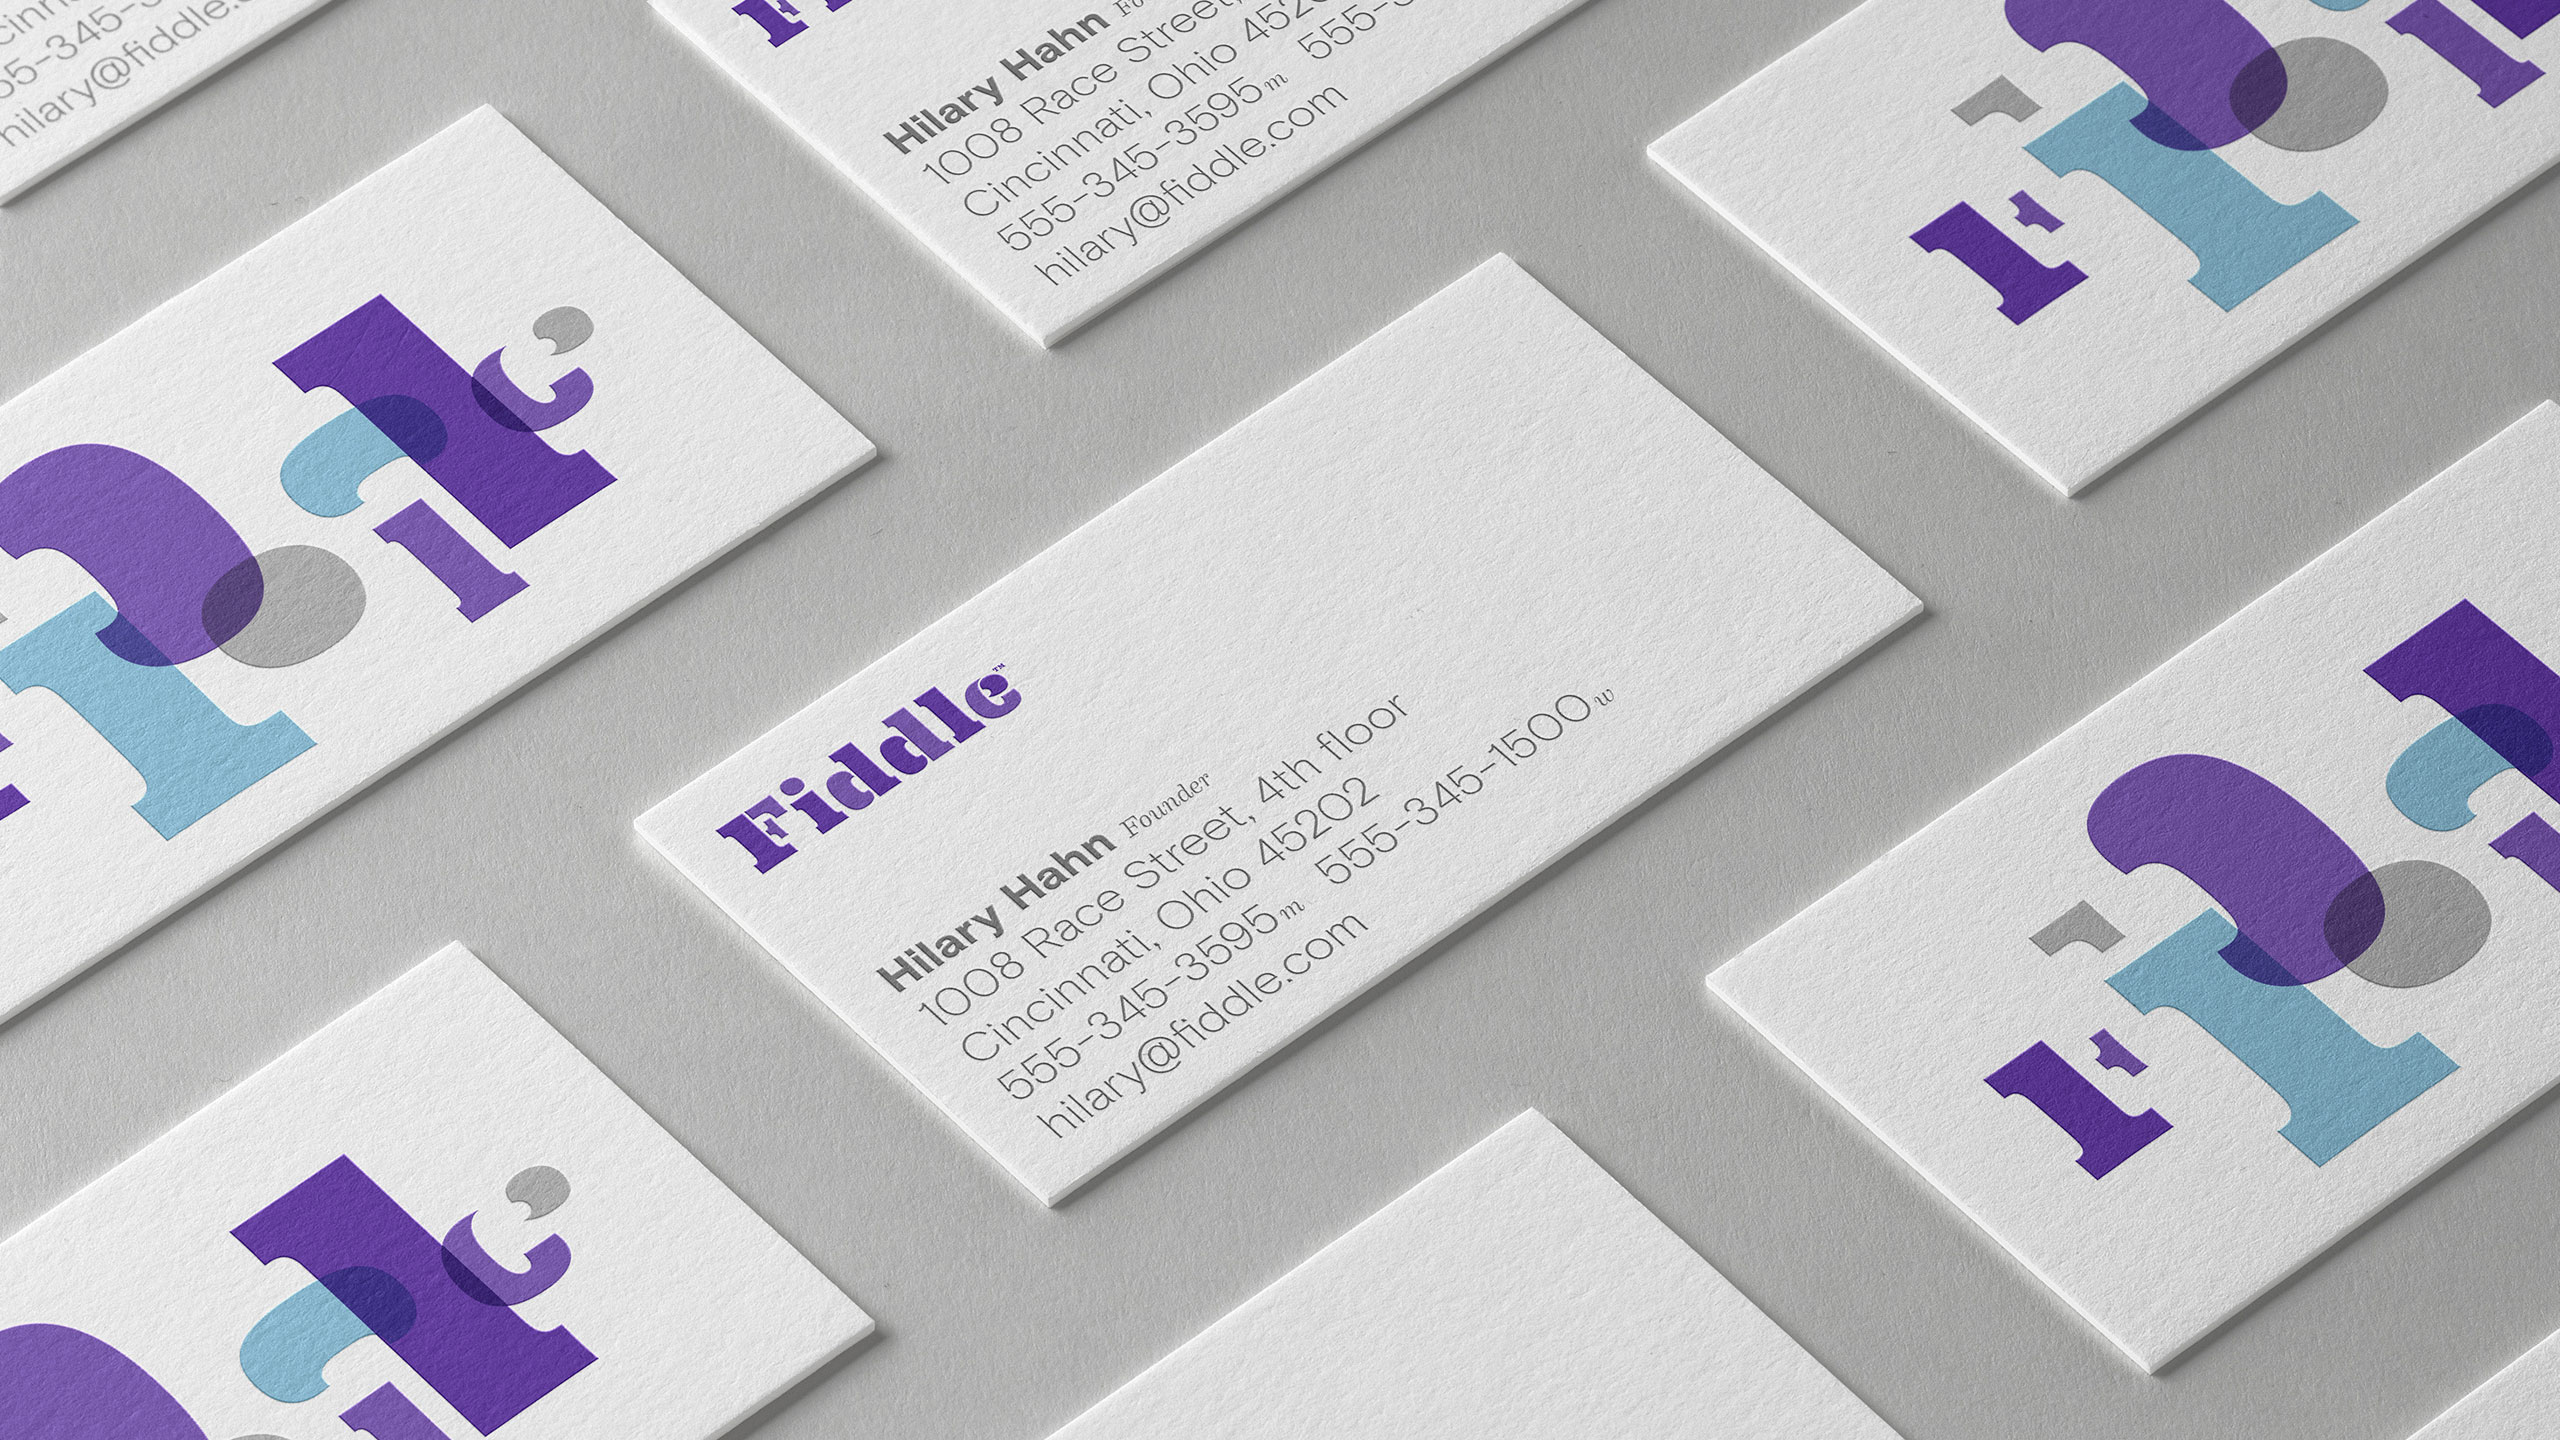 Fiddle business cards